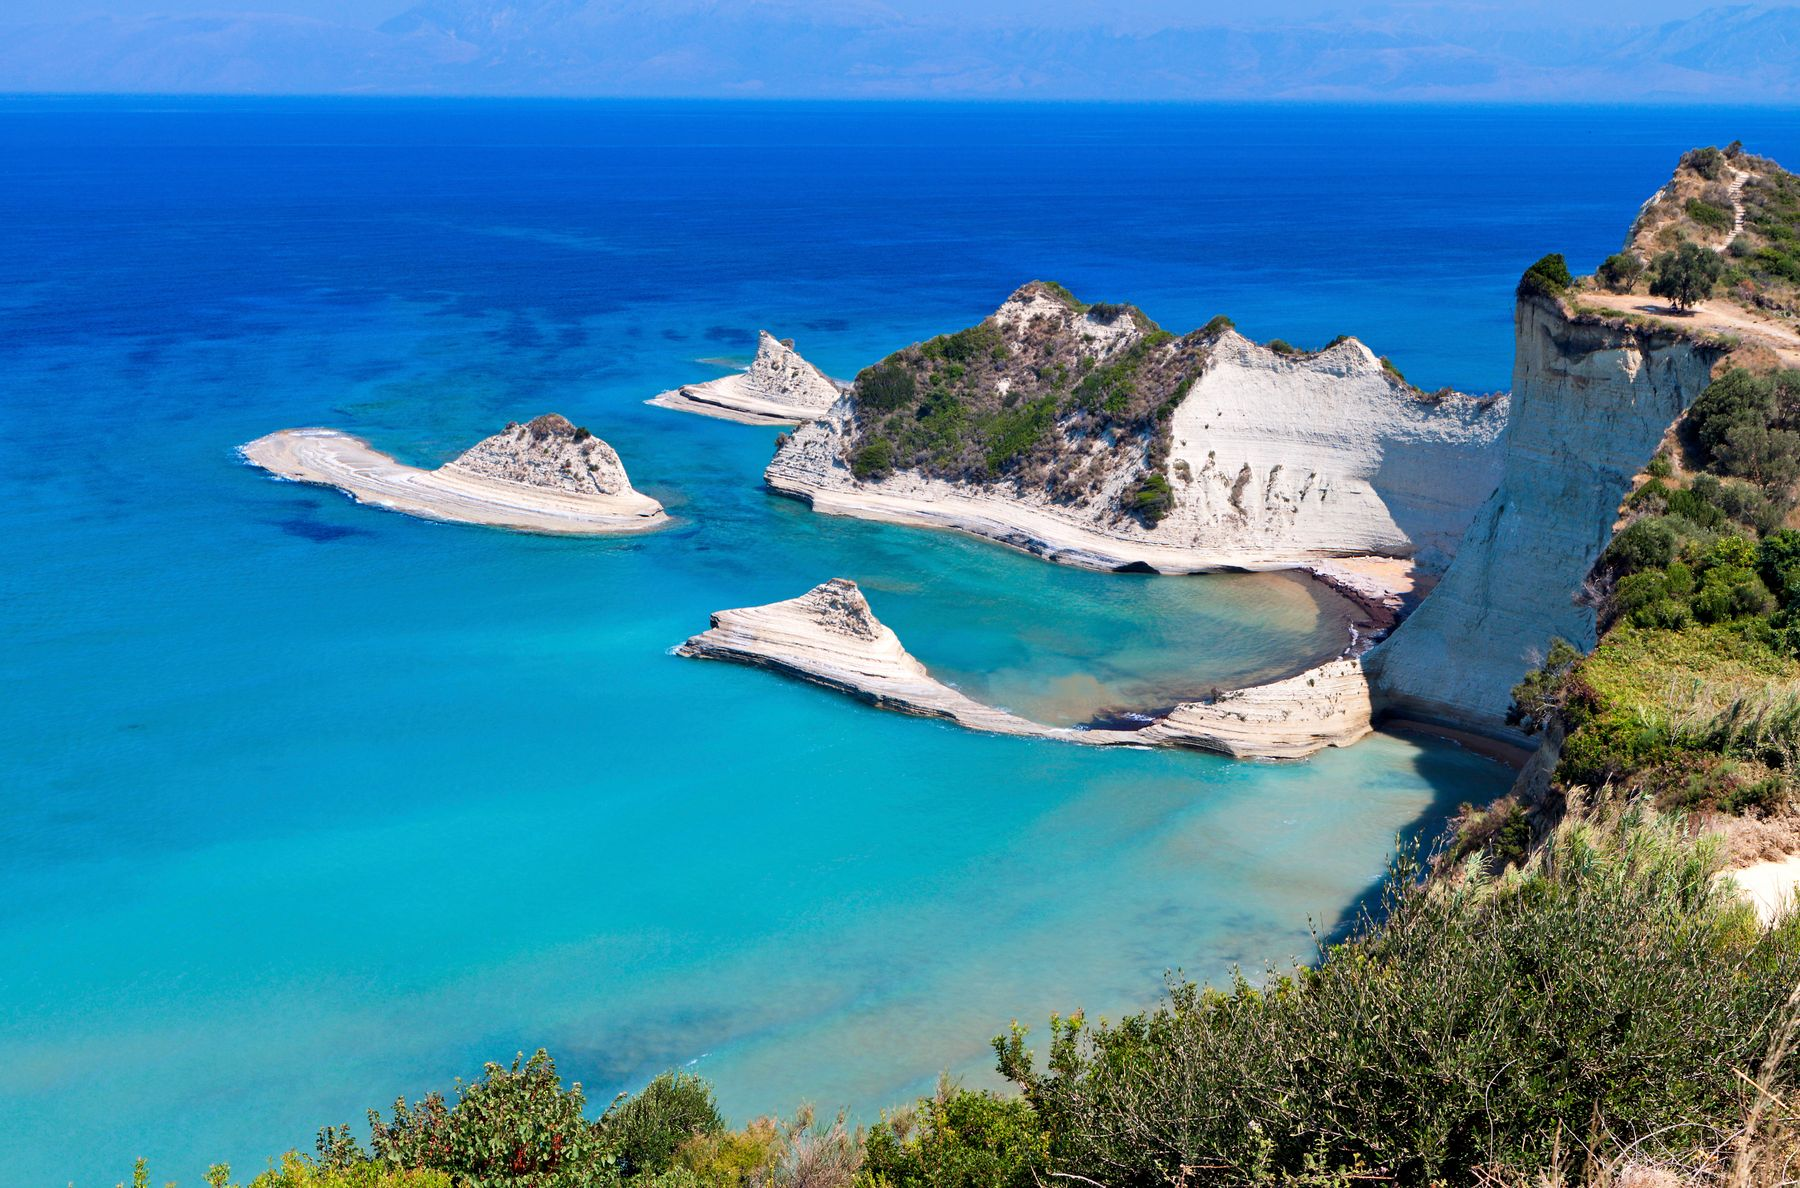 As 20 mais belas ilhas gregas: Corfu